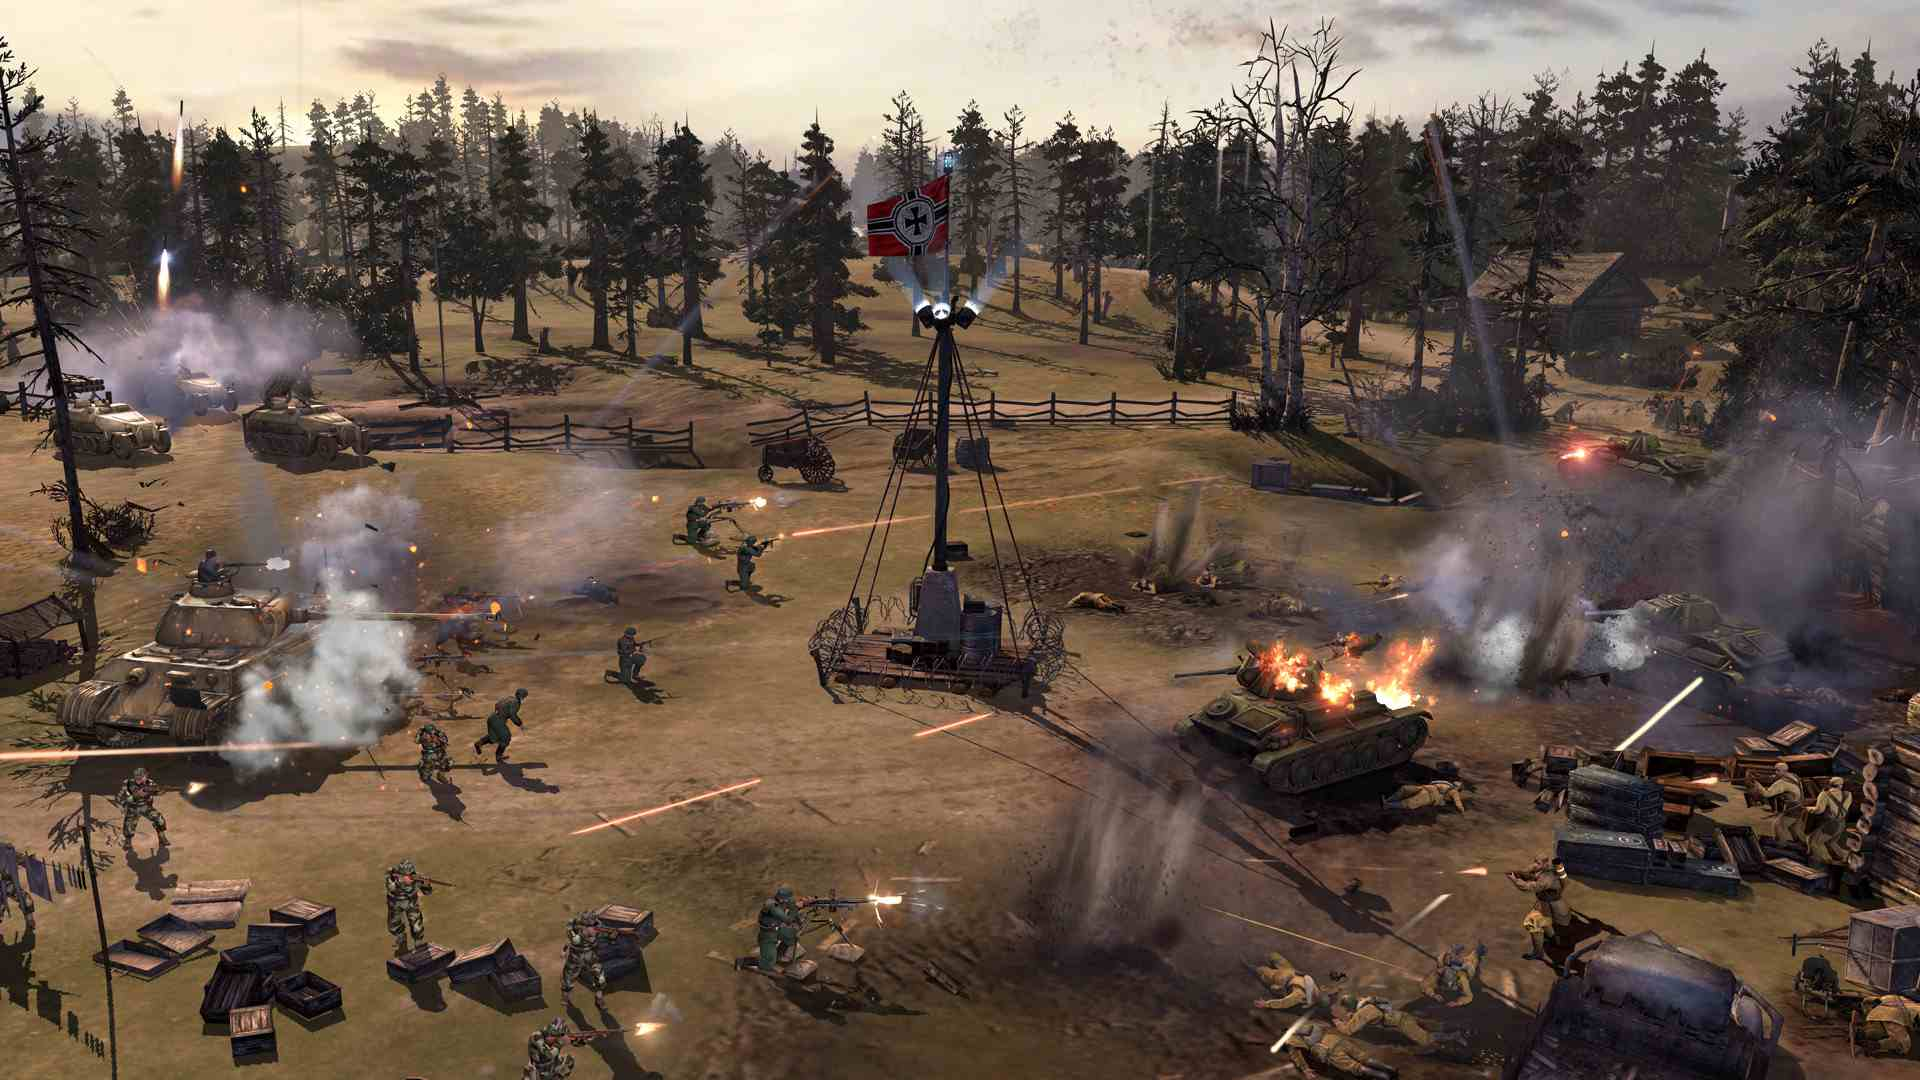 Overview Of The Company Of Heroes Series